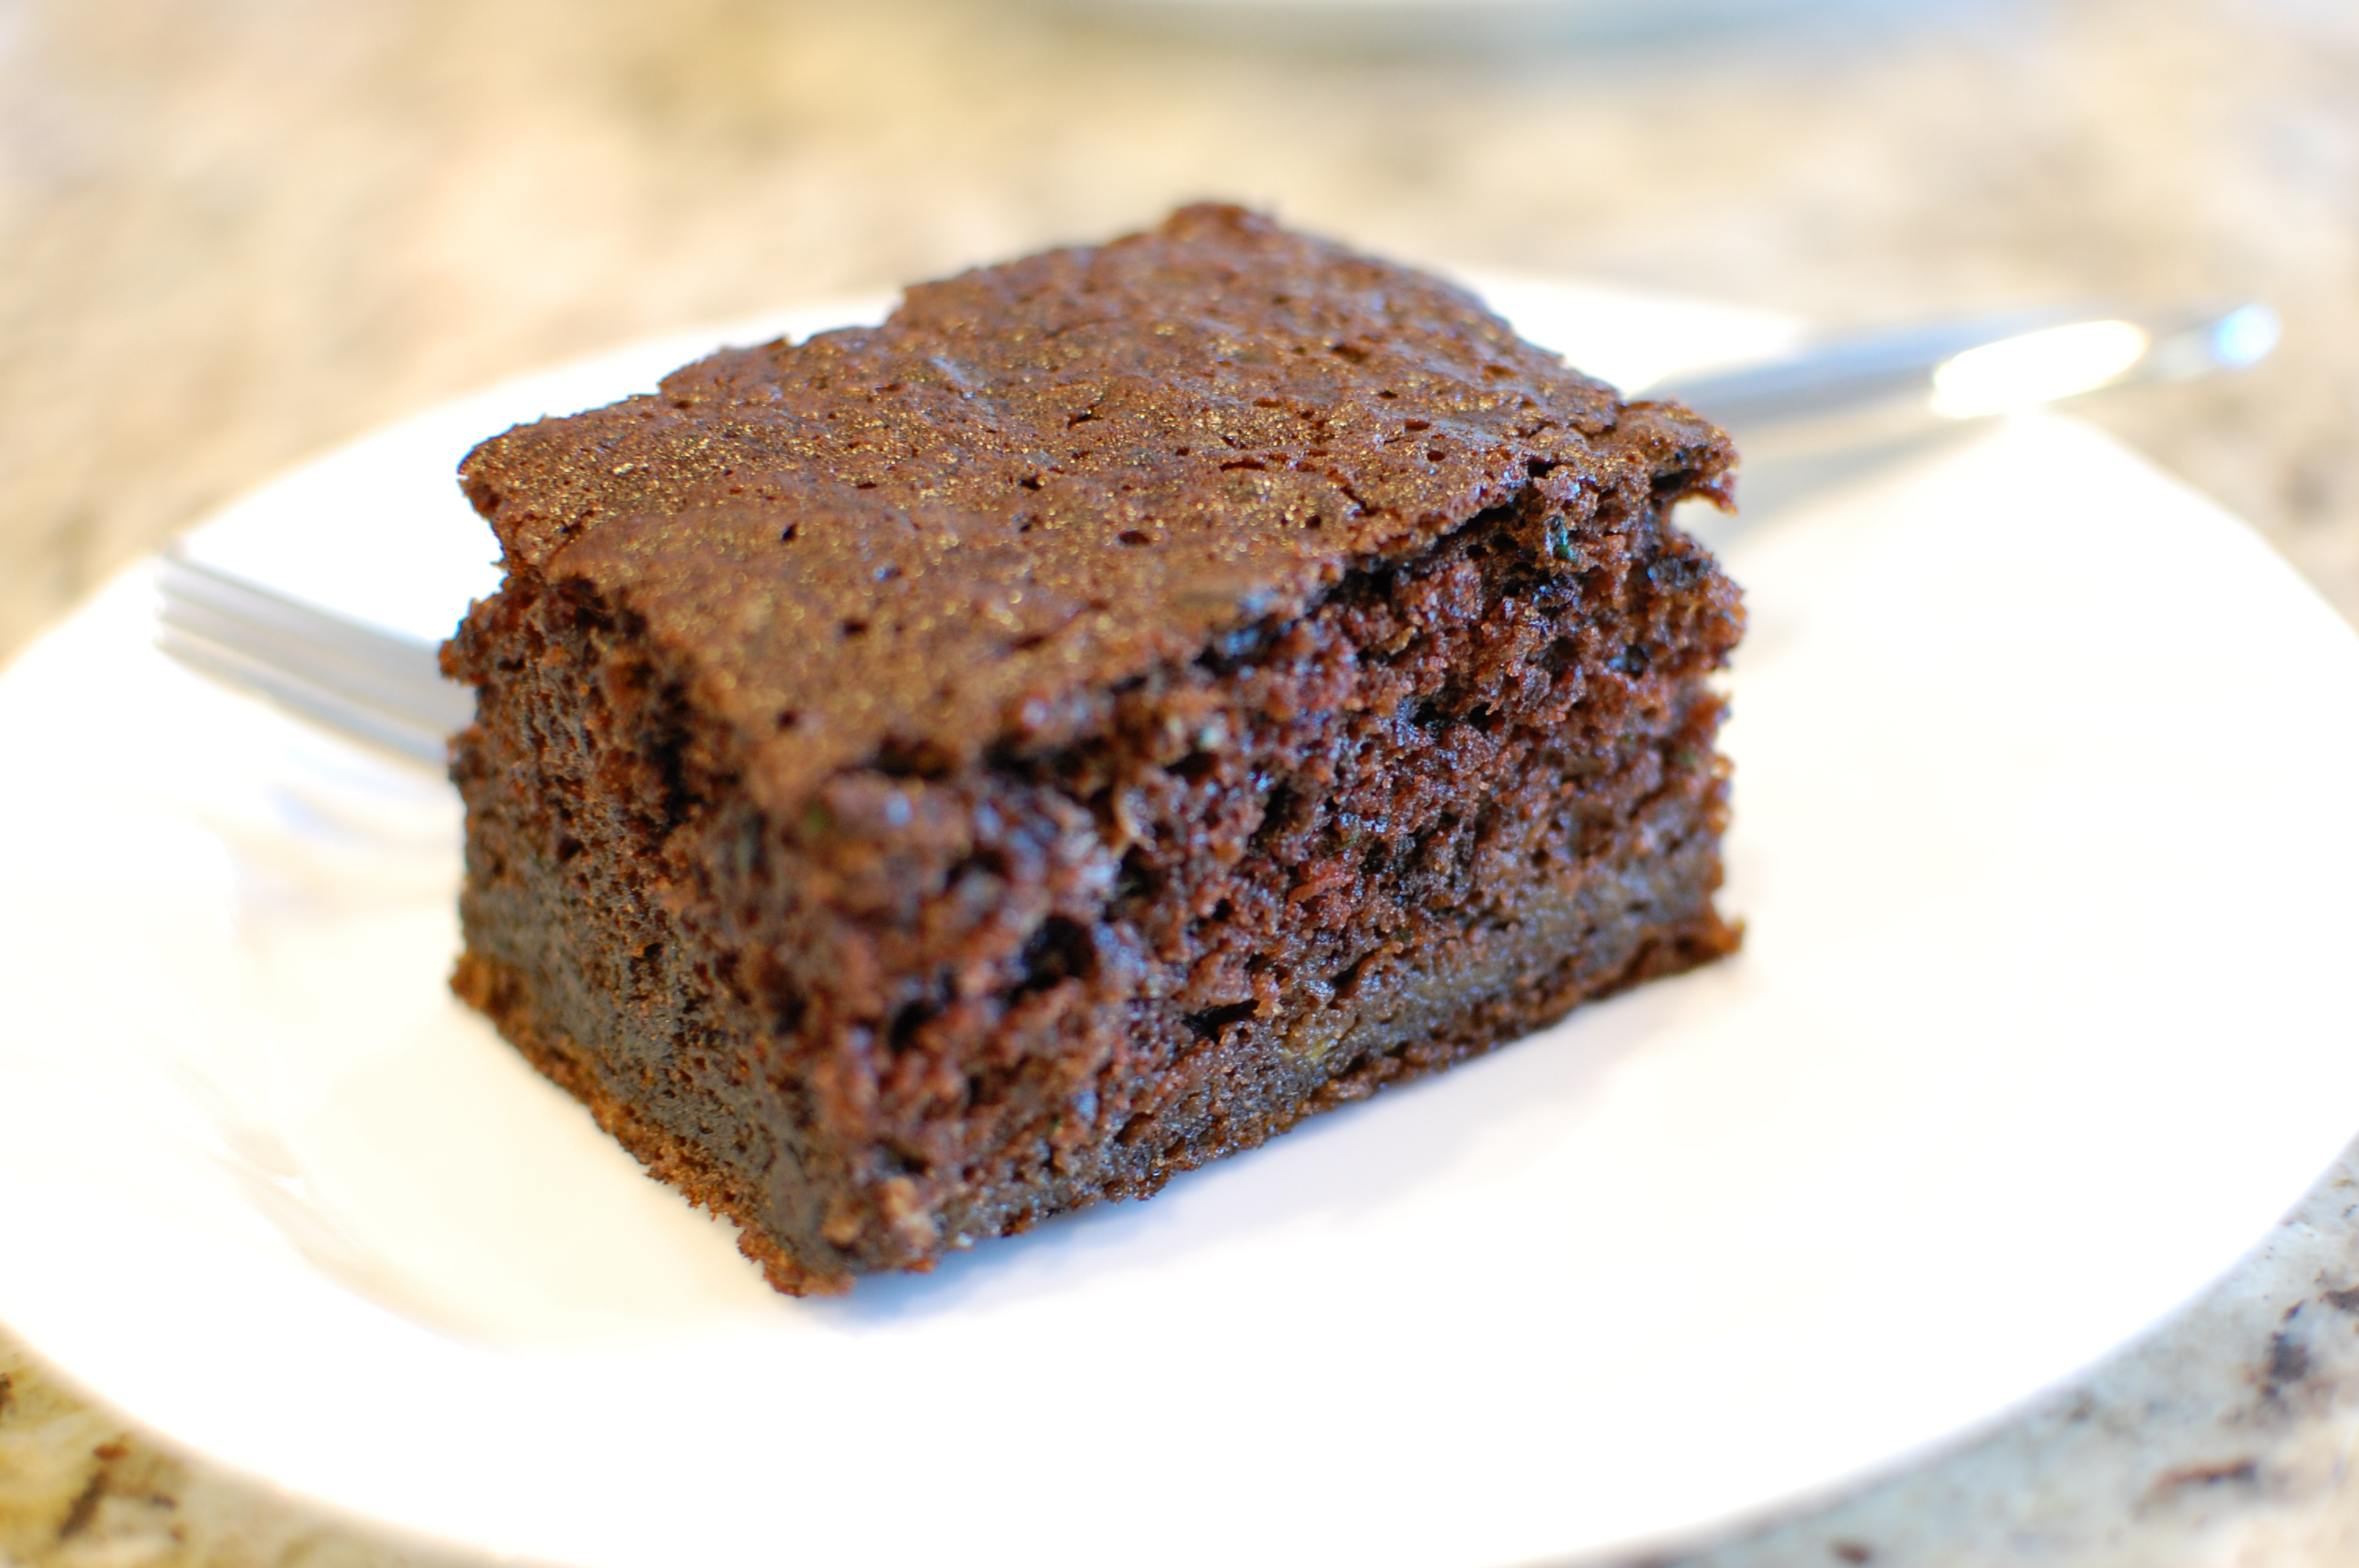 Chocolate Zucchini Cake — The 350 Degree Oven